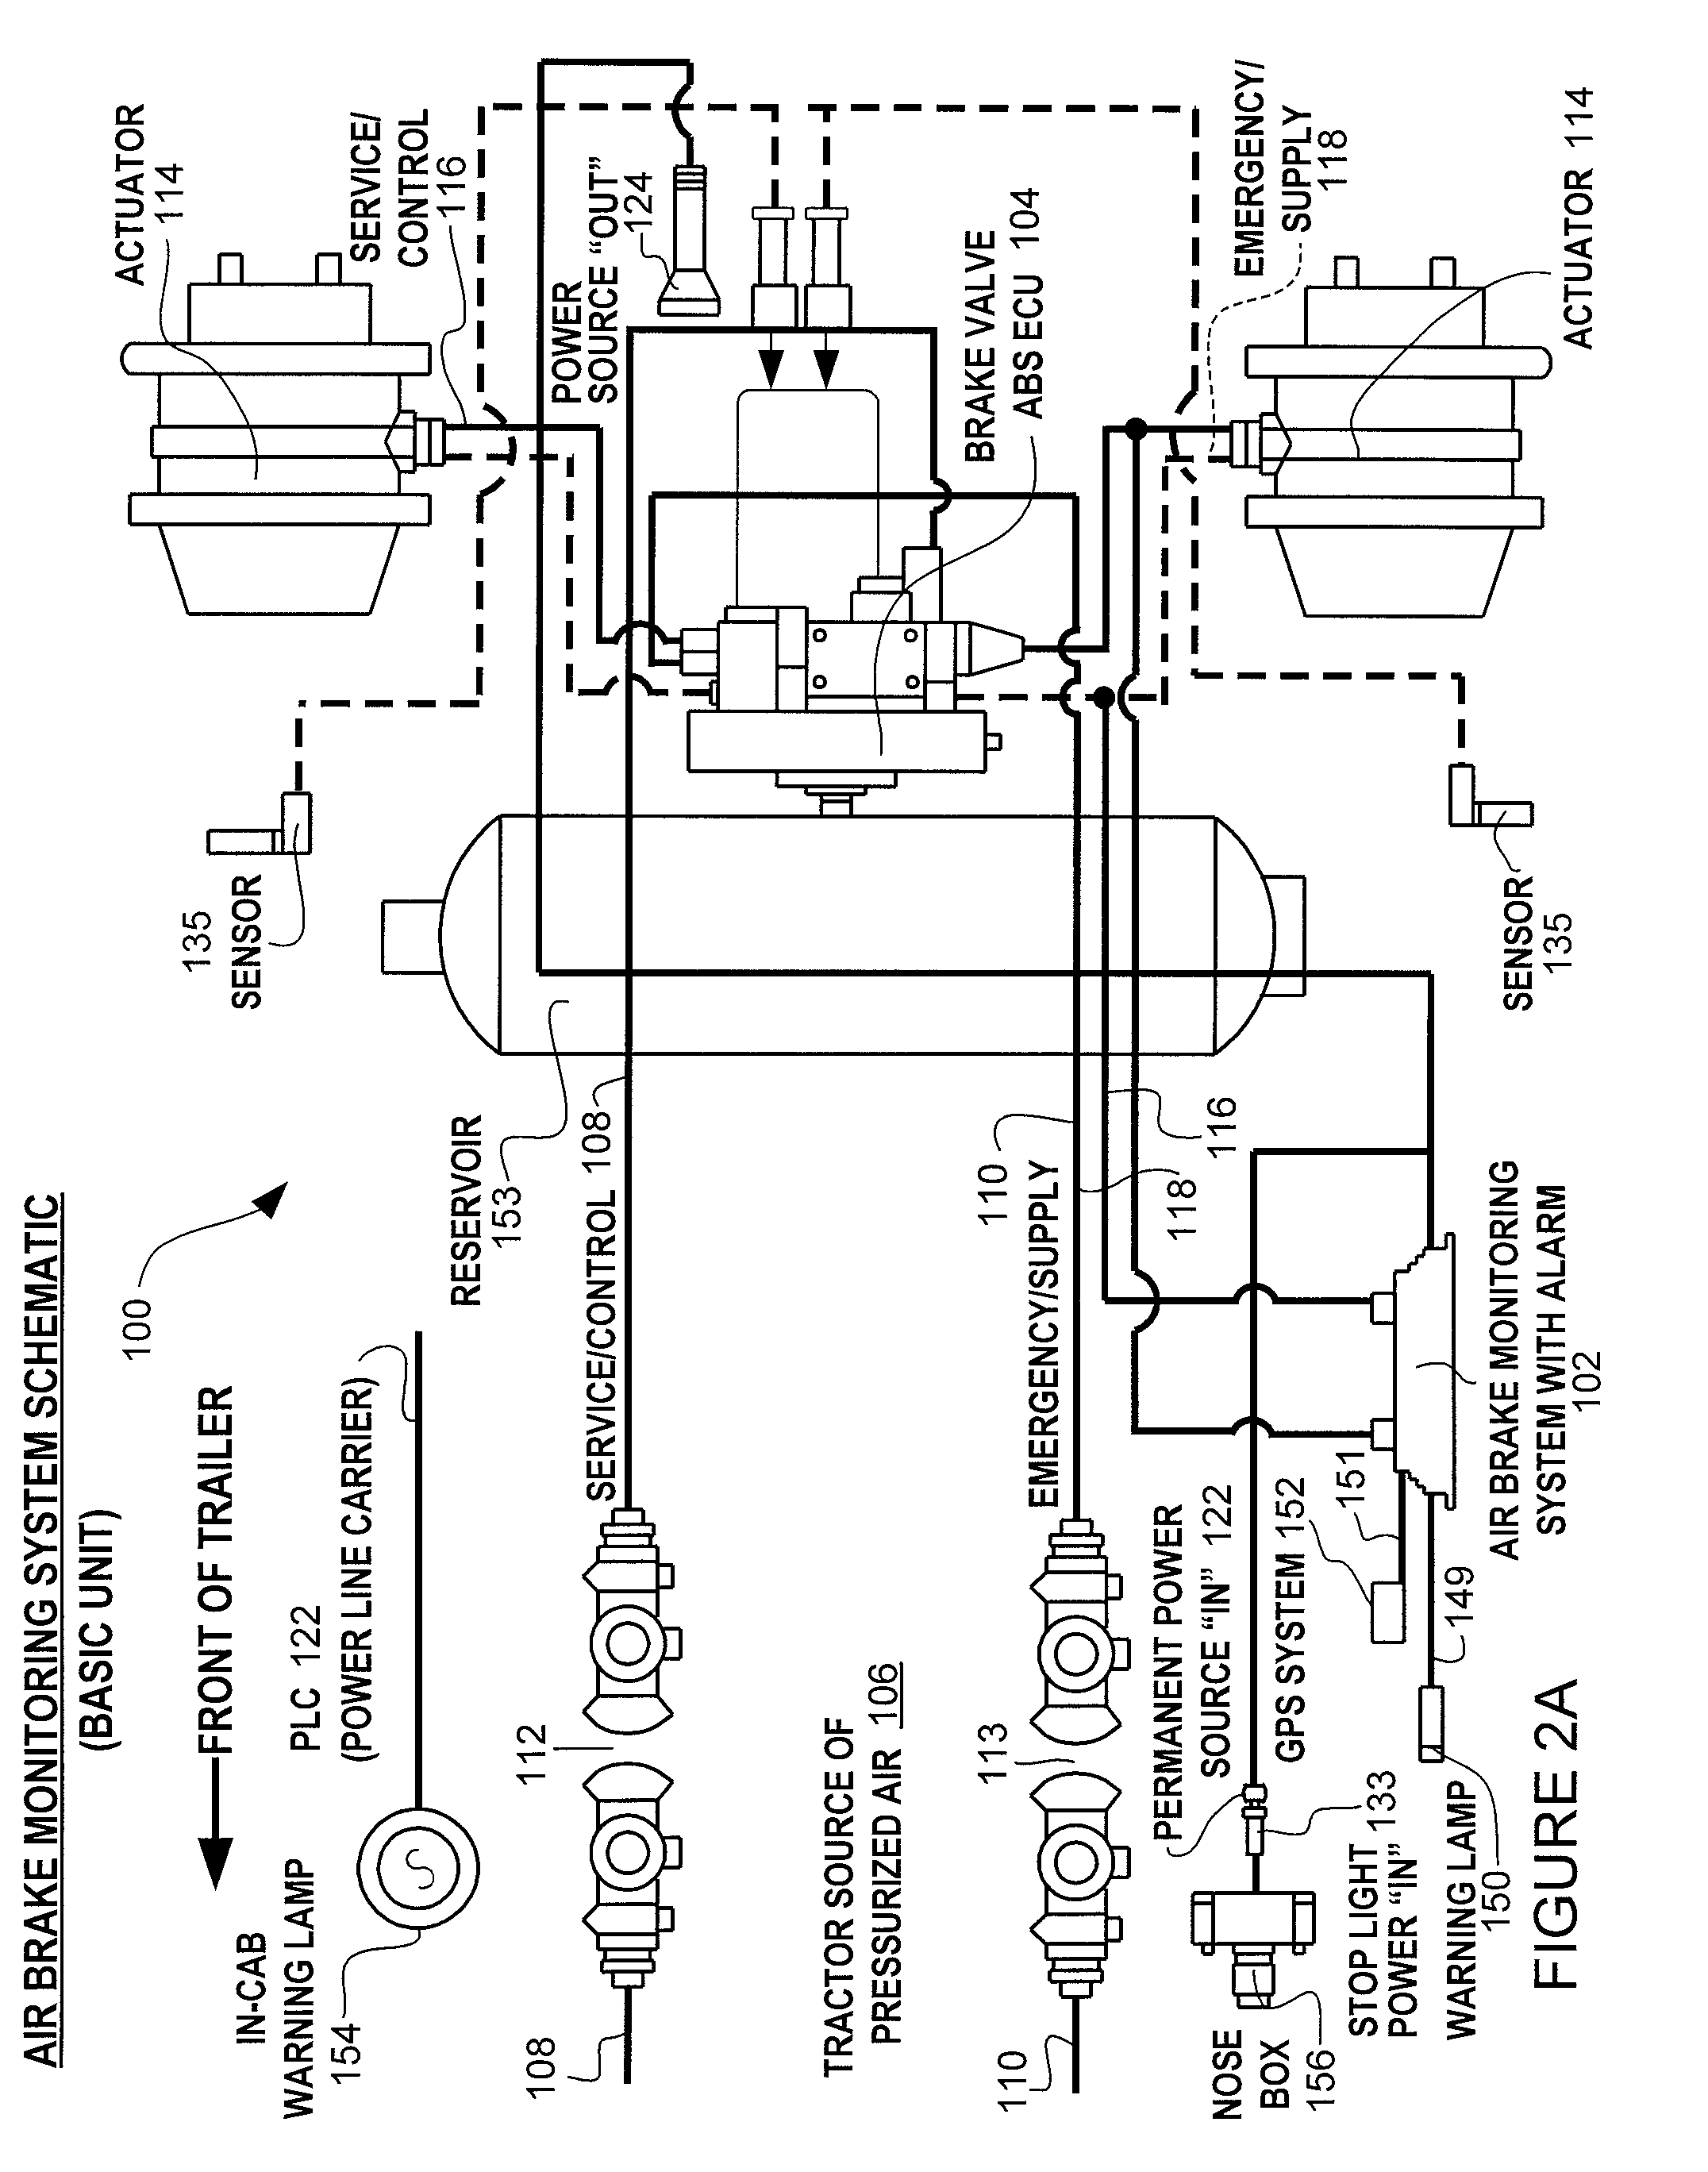 1968 ford wiring diagrams. 1968. free wiring diagrams, Wiring diagram